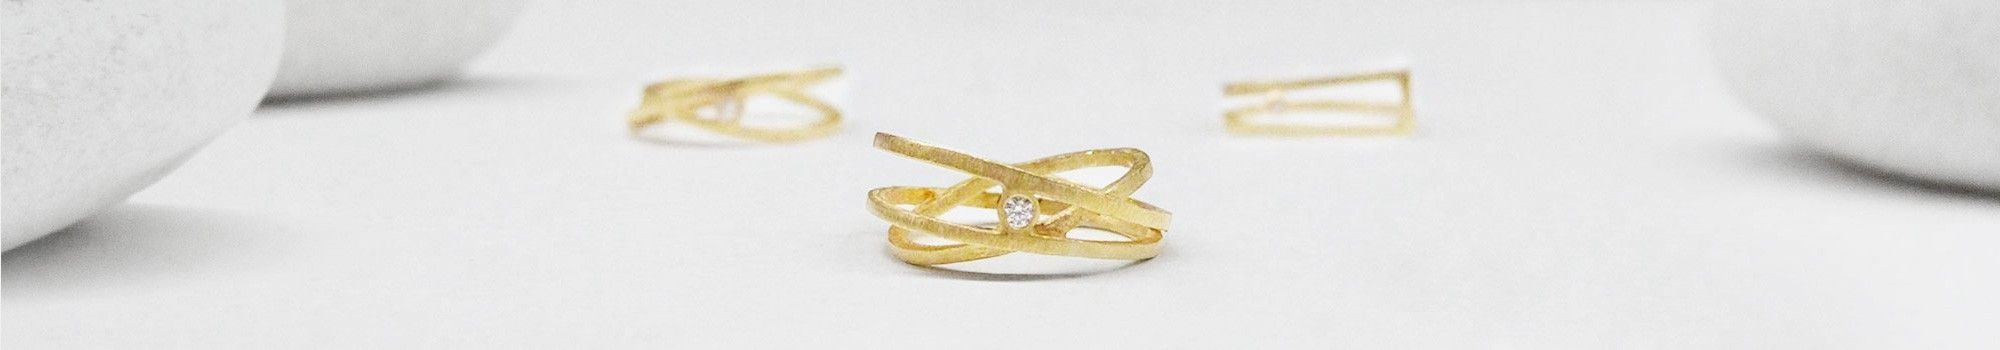 Handmade gold rings and bands